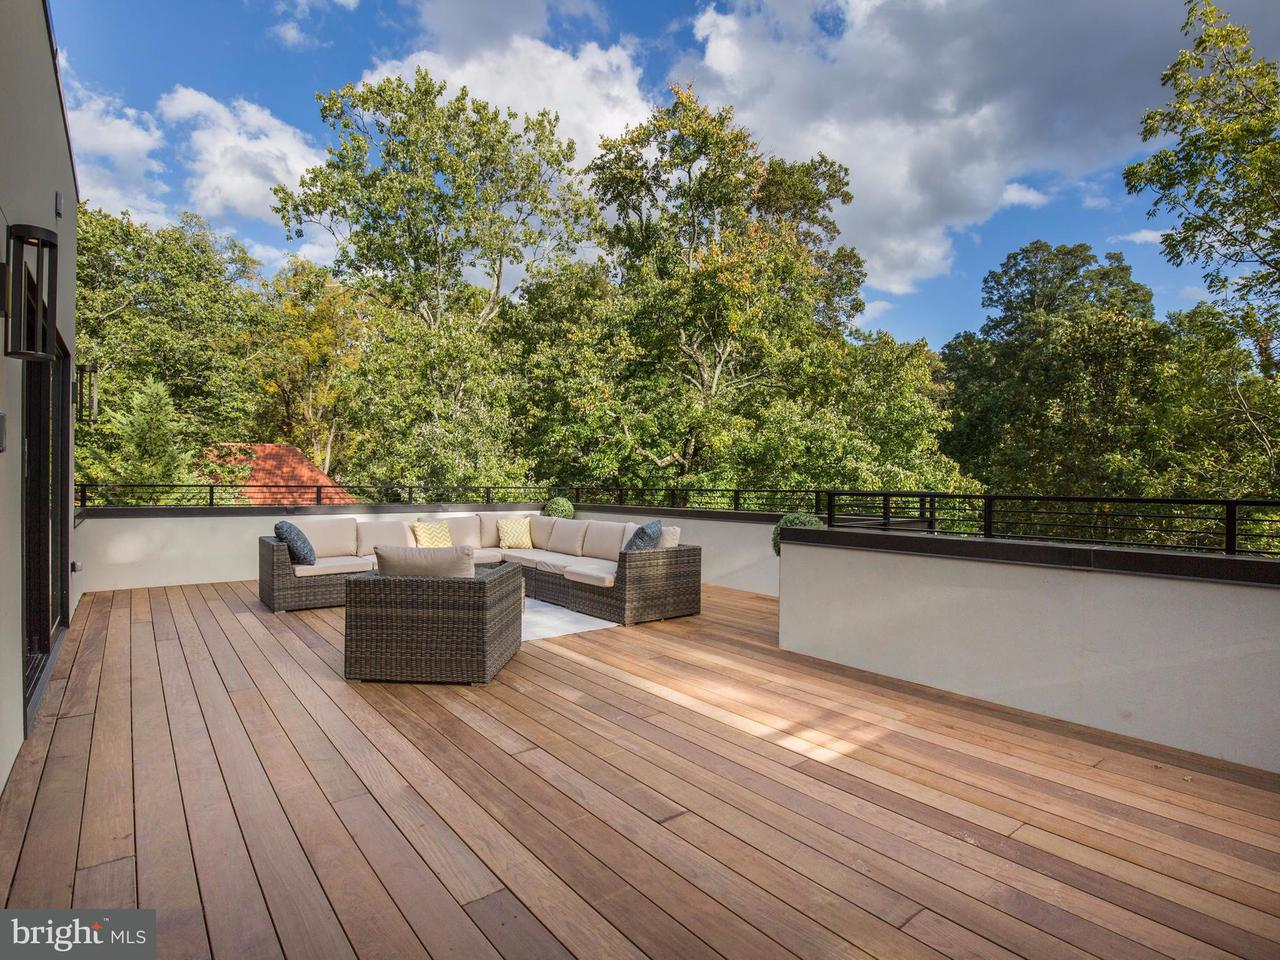 Additional photo for property listing at 2905 University Ter NW  Washington, District Of Columbia 20016 United States